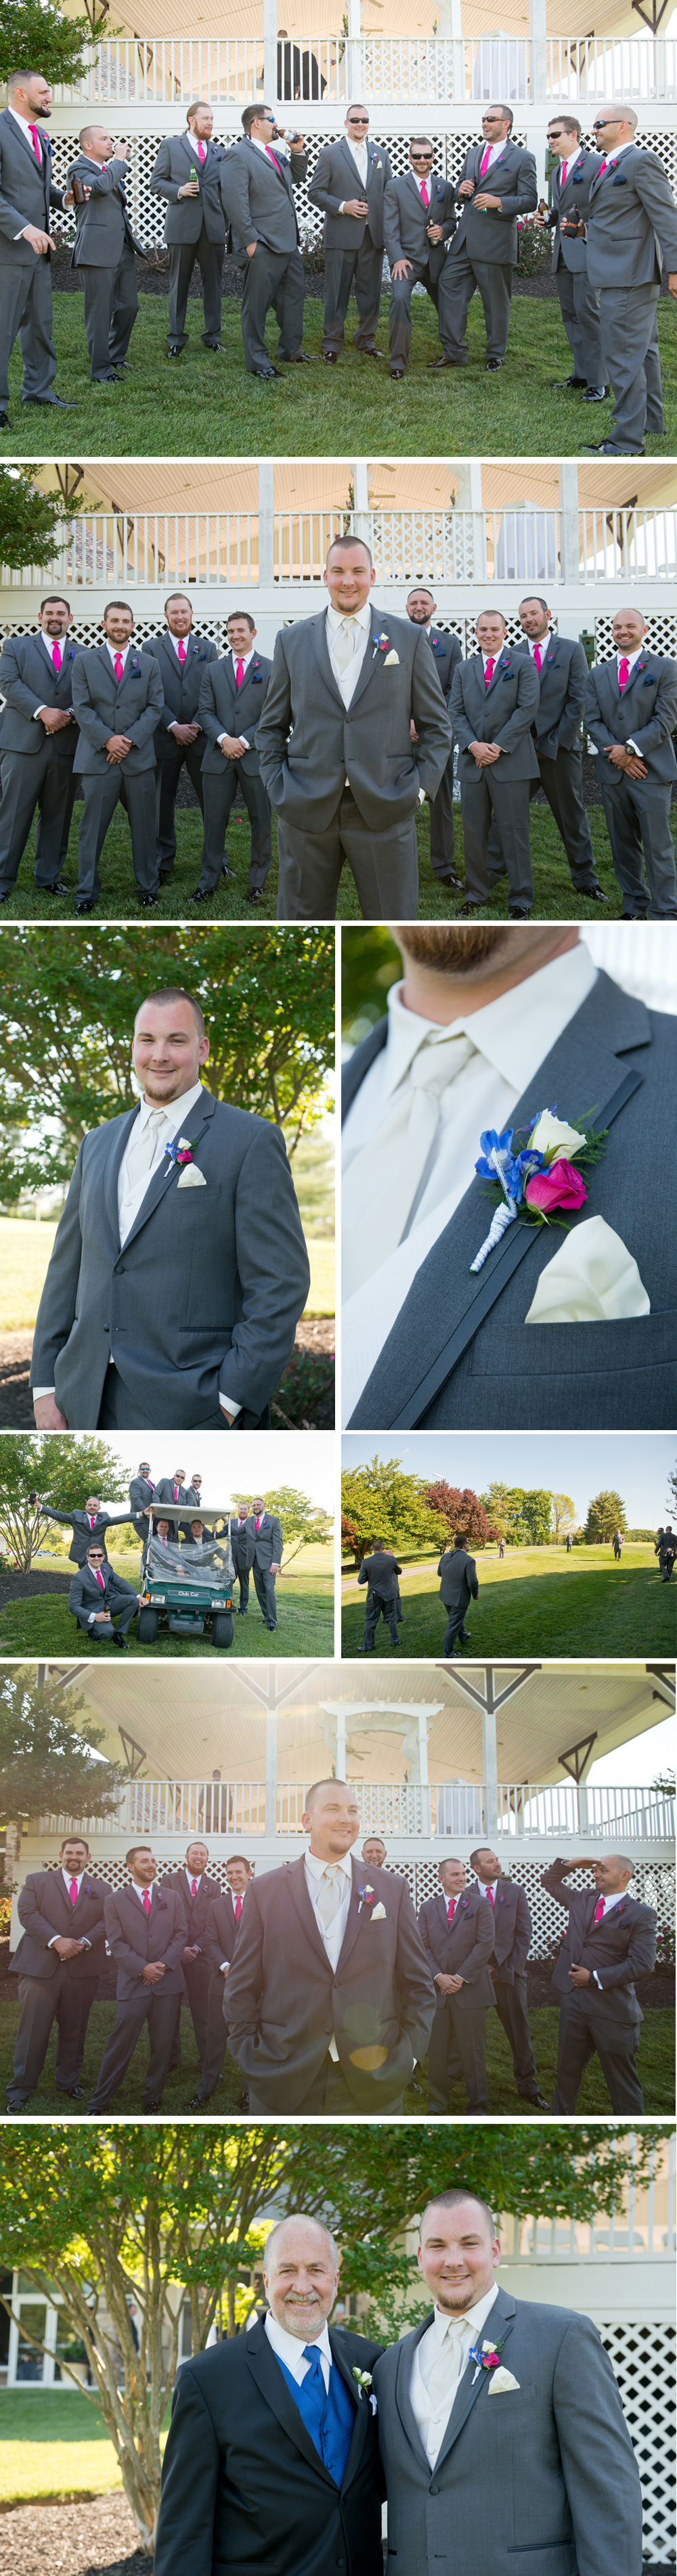 Piney_Branch_Wedding-05